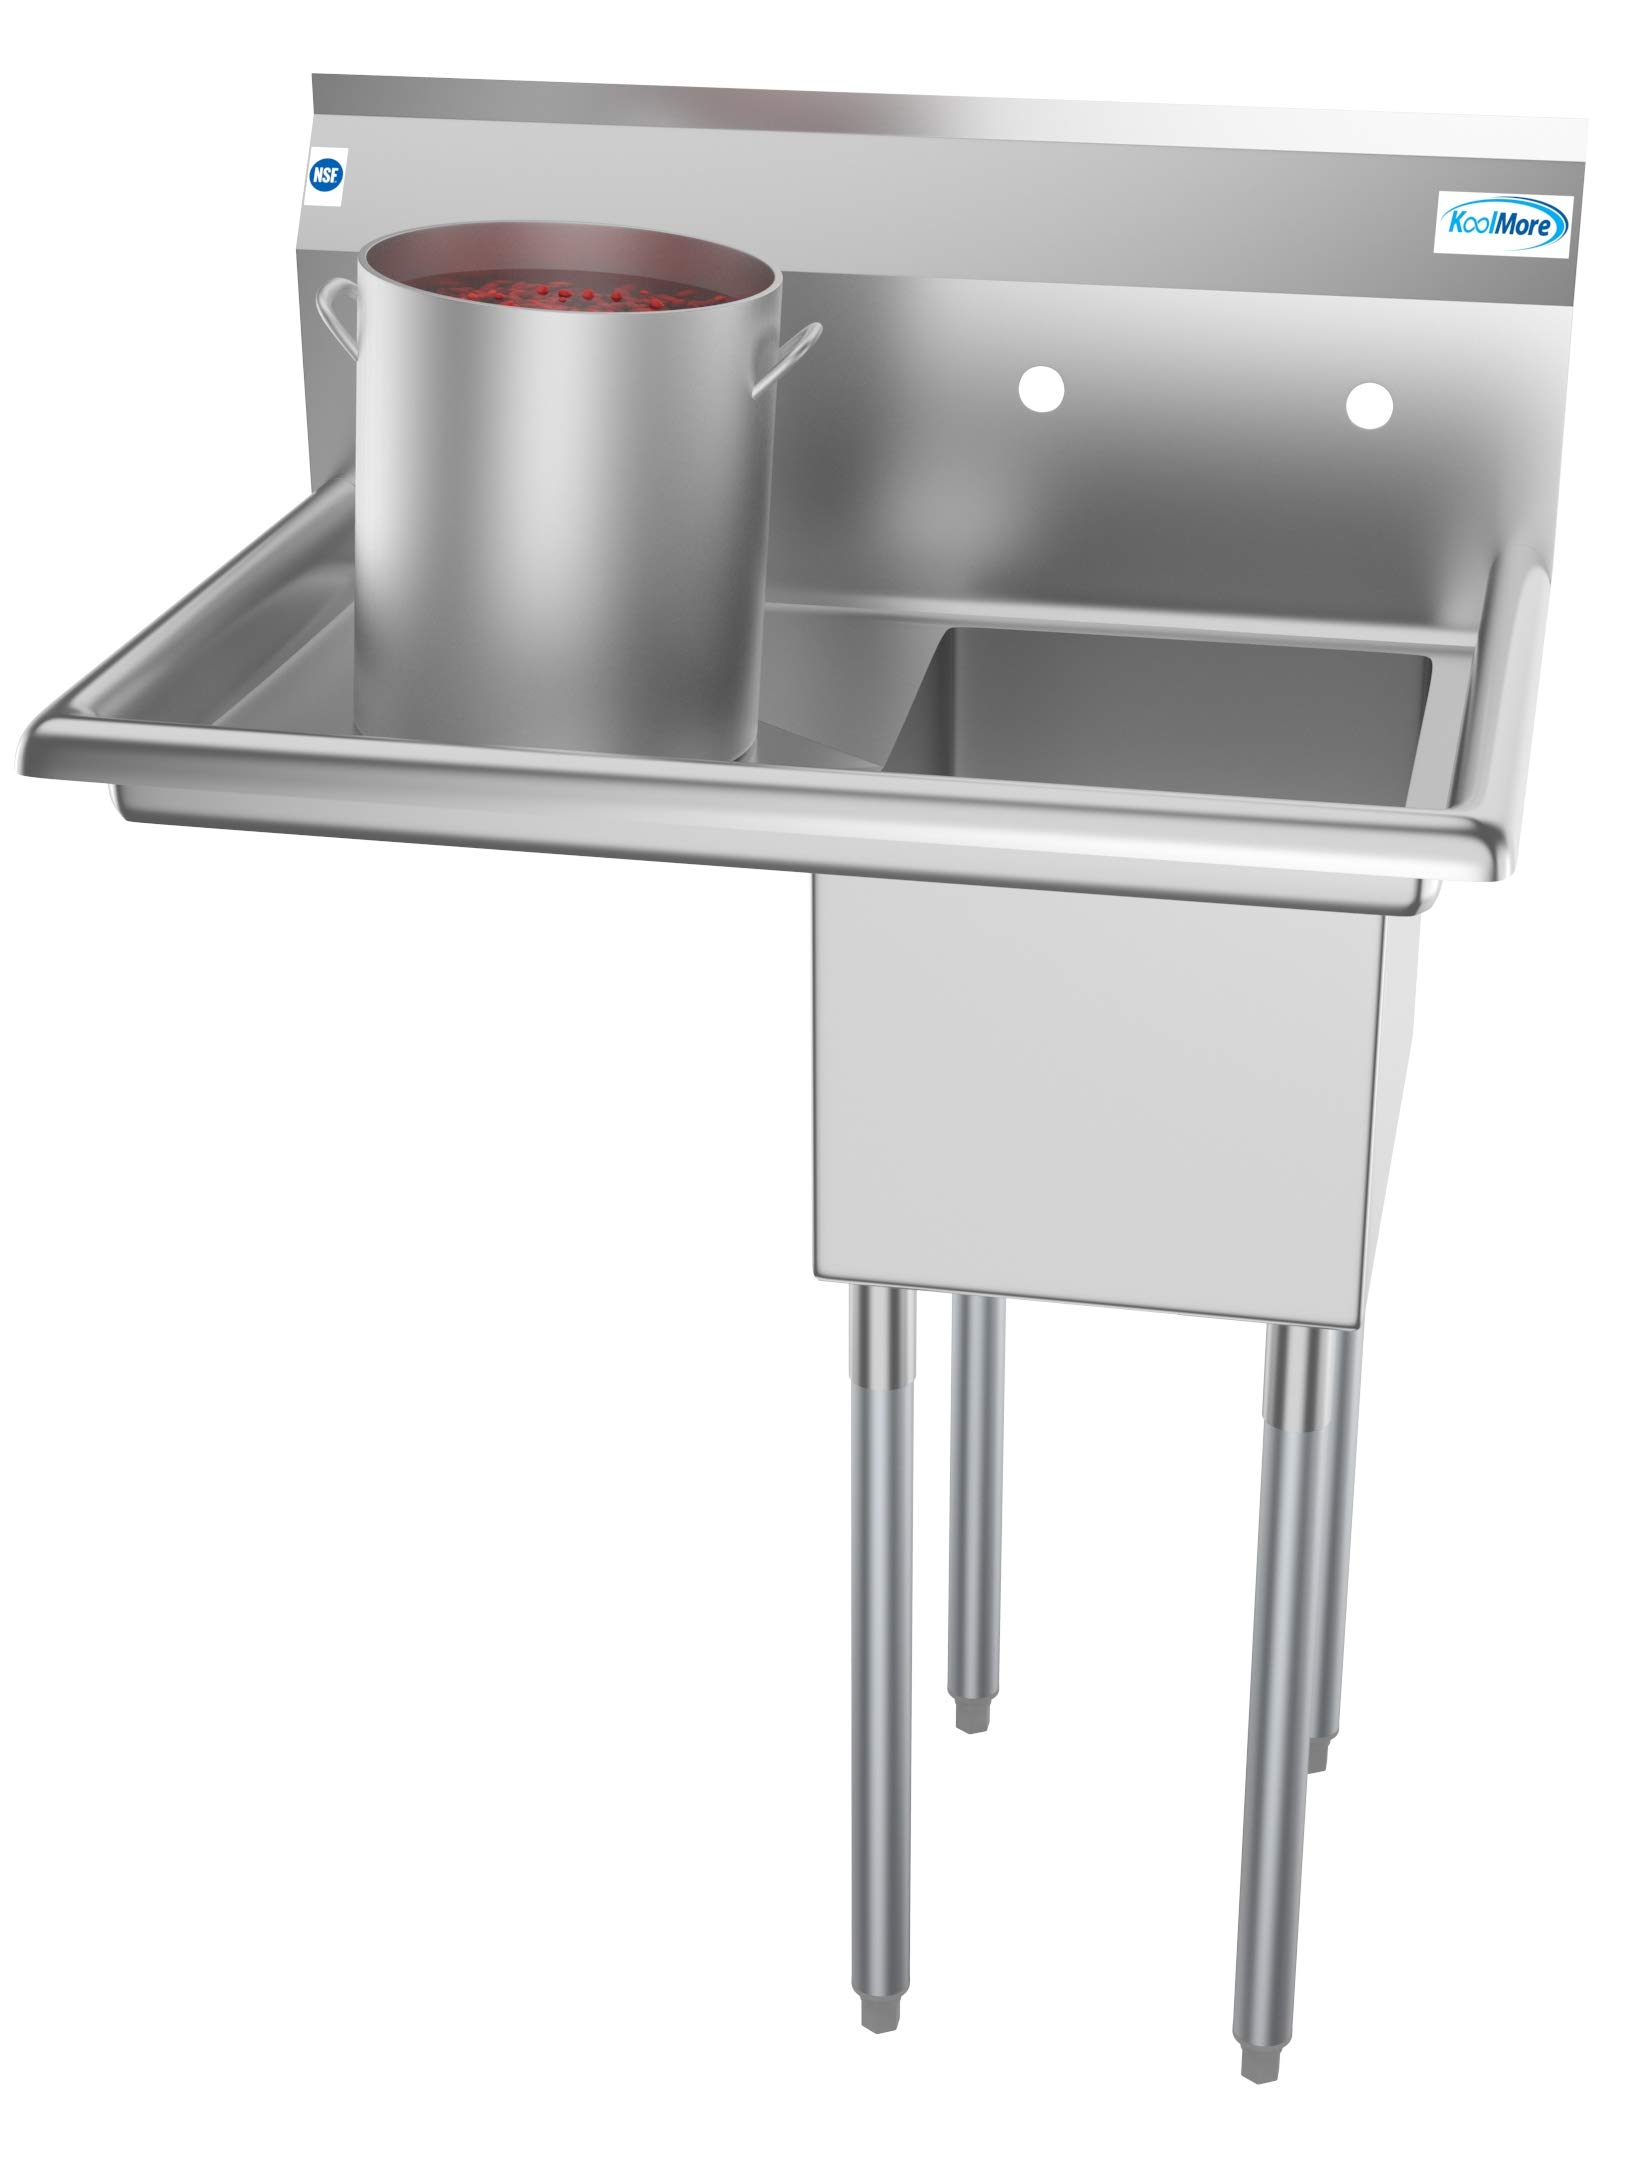 KoolMore 1 Compartment Stainless Steel NSF Commercial Kitchen Prep & Utility Sink with Drainboard - Bowl Size 12'' x 16'' x 10''